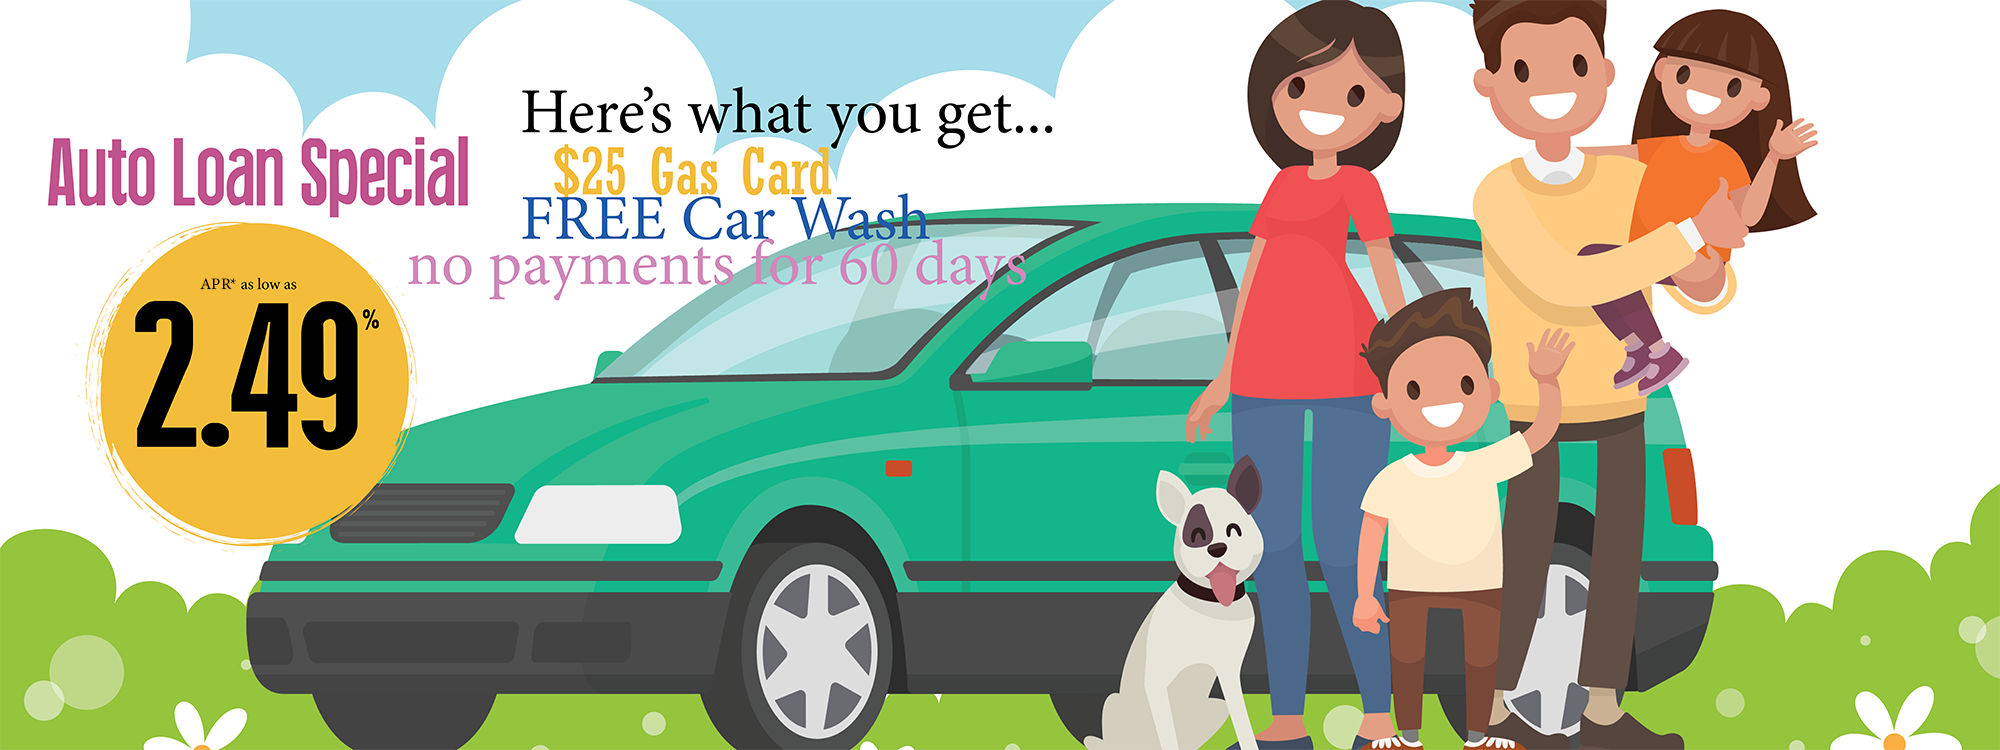 Auto Loan special. Here's what you get: $25 gas card, free car wash, no payments for 60 days. APR* as low as 2.49%.